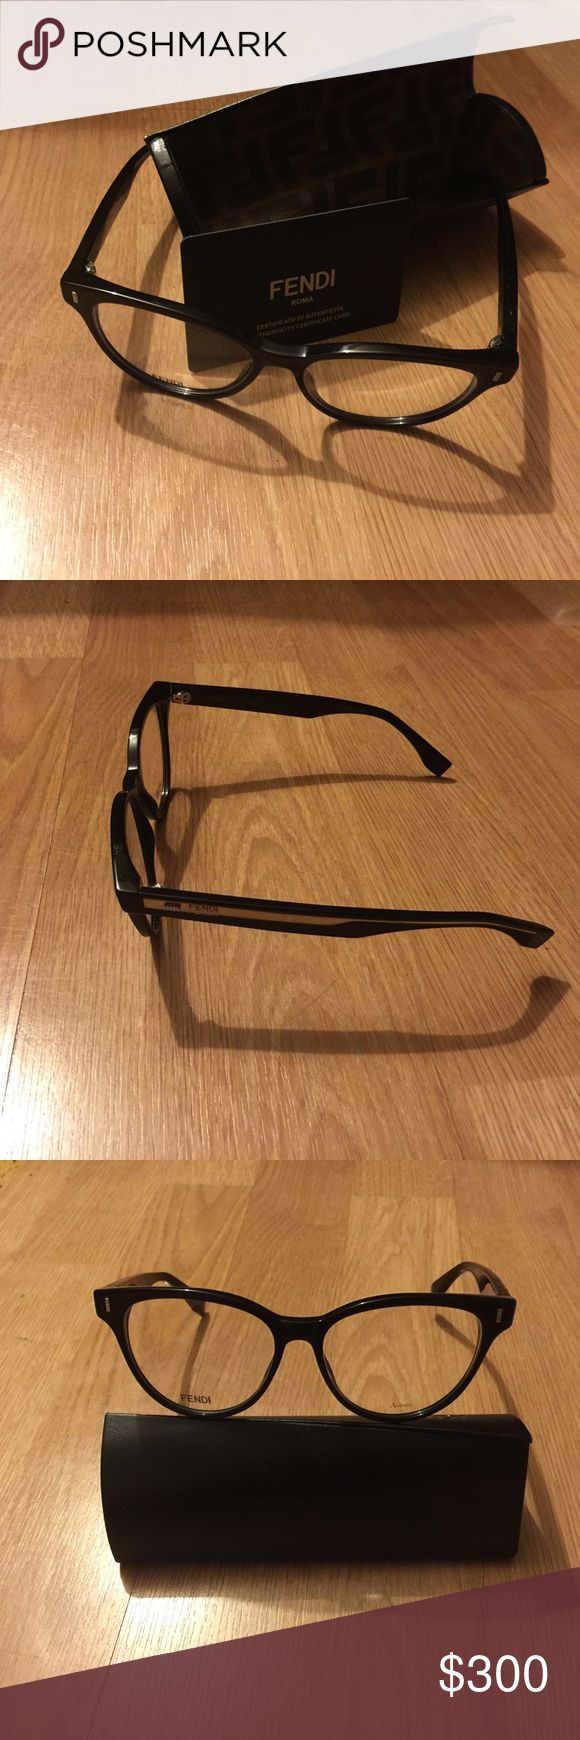 Fendi eyewear Optical fendi glasses. Brand new. Make in Italy. With certificate Size 44-17 140. If you like it make an offer I will happy to bring the price down Fendi Accessories Glasses